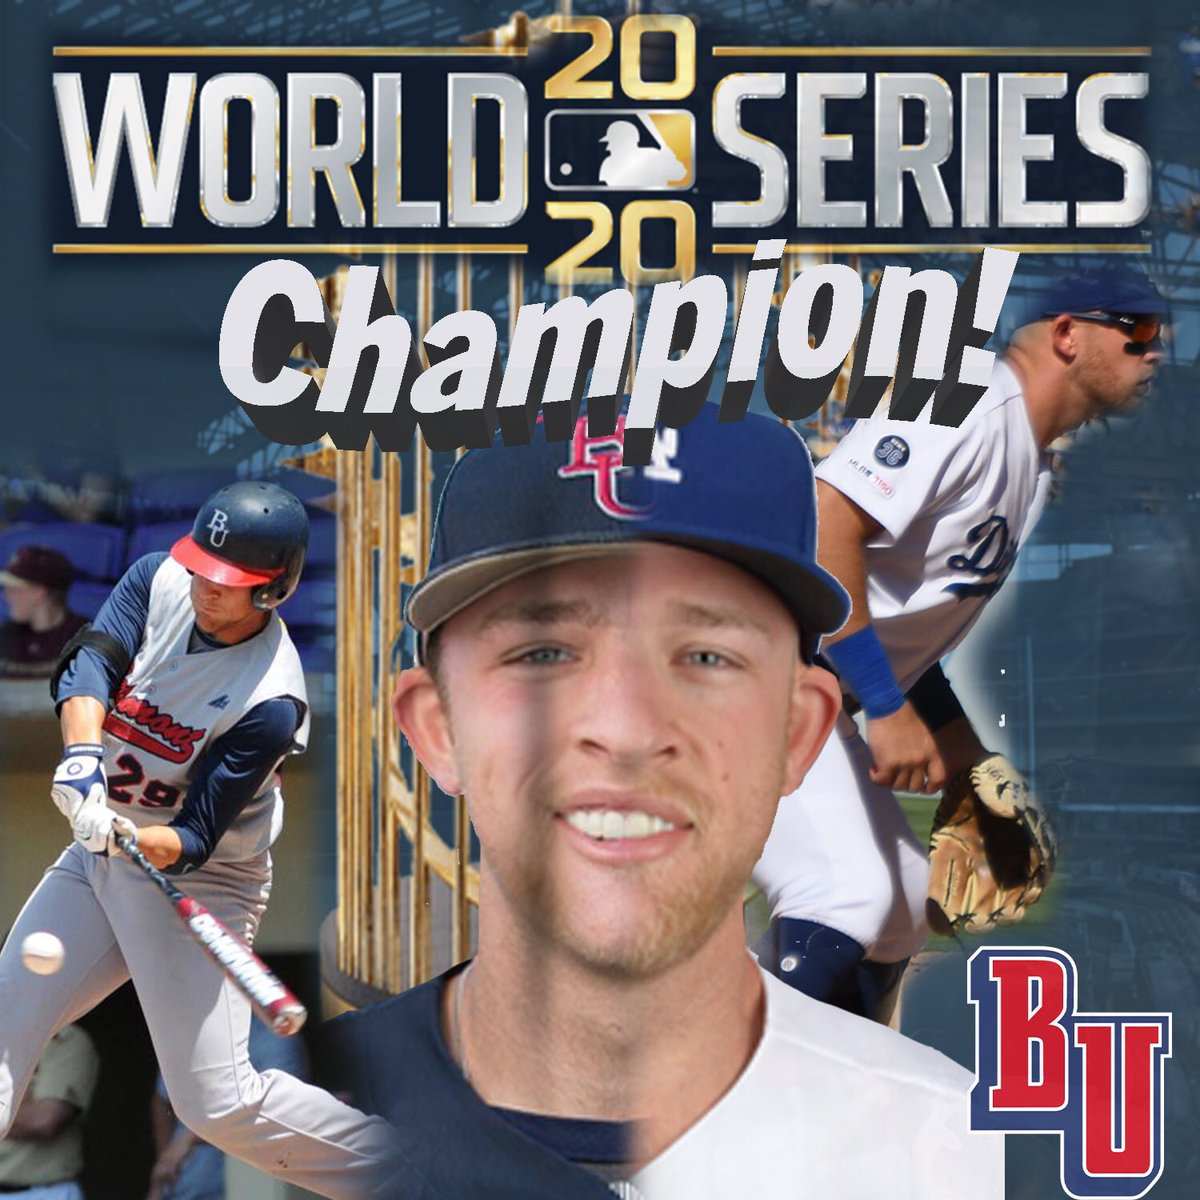 .@BelmontUniv officially has a #WorldSeries CHAMPION!💍 Congrats to former @GoBelmontBruins ⚾️ player @Matt_beatybu for winning the @MLB World Series with the @Dodgers 👏👏 📰| bit.ly/2JcKL7g #itsbruintime | #LATogether